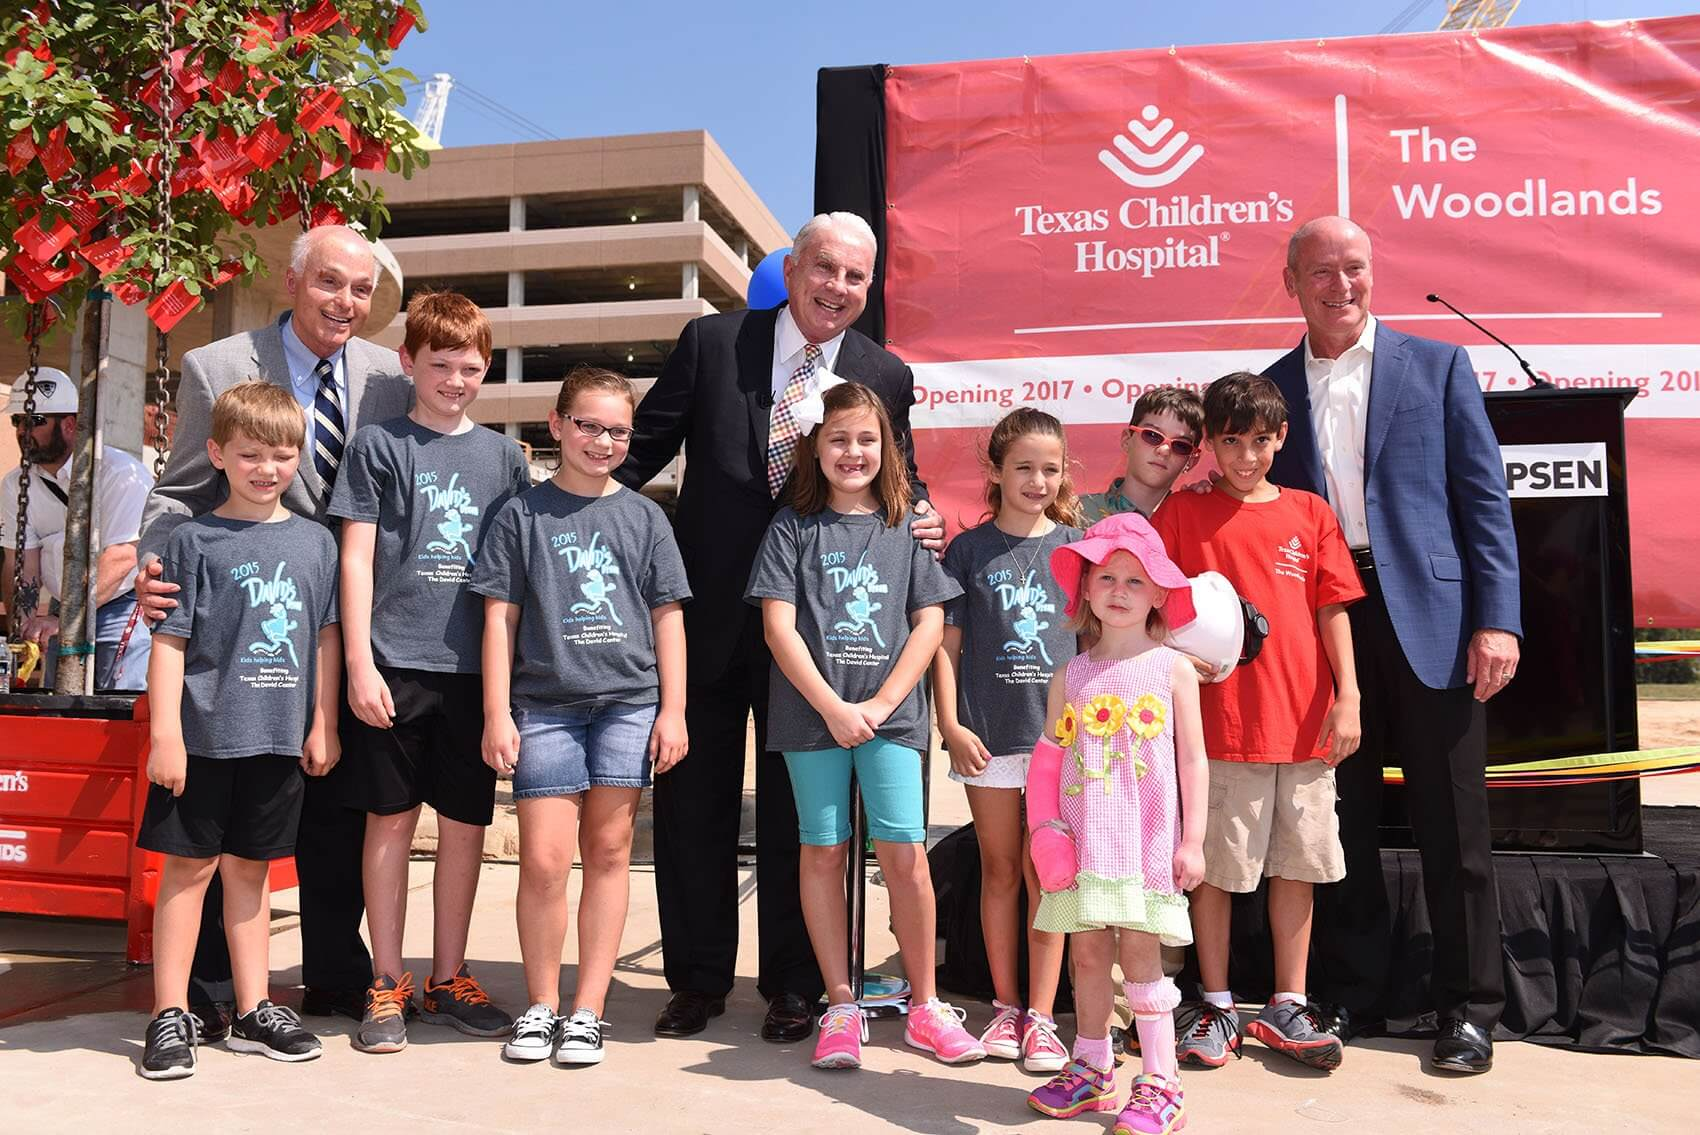 (L to R): Howard Tellepsen, president of Tellepsen Builders; Mark A. Wallace, president and CEO of Texas Children's Hospital; and Dr. Mark W. Kline, physician-in-chief at Texas Children's Hospital, smile with patients from the north Houston area and students from David Elementary School before the ceremony. (Credit: Paul Vincent Kuntz/Texas Children's Hospital)